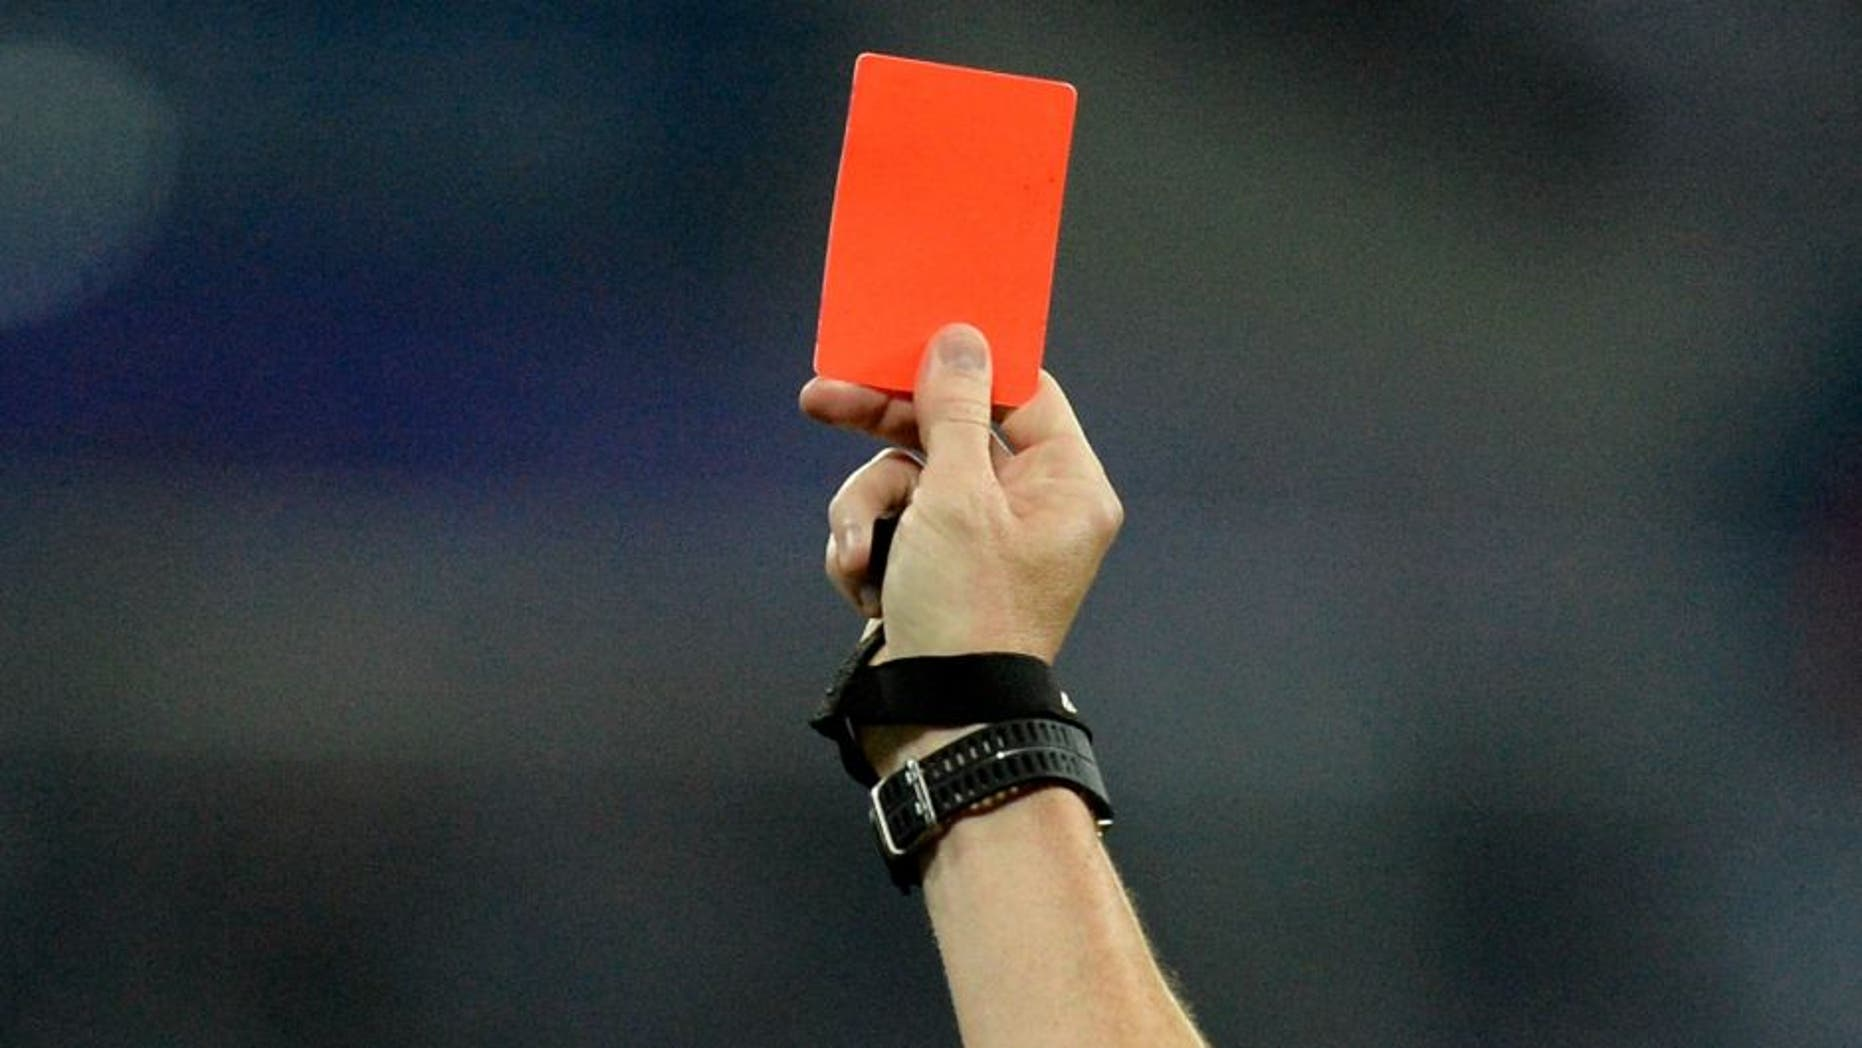 The French referee Ruddy Buquet gives a red card to Monacos Ivorian forward Lacina Traore (L) during the French L1 football match between Olympique Lyonnais (OL) and Association sportive de Monaco (ASM) at the Parc de l'Olympique Lyonnais in Decines-Charpieu, central eastern France, on May 7, 2016. / AFP / ROMAIN LAFABREGUE (Photo credit should read ROMAIN LAFABREGUE/AFP/Getty Images)